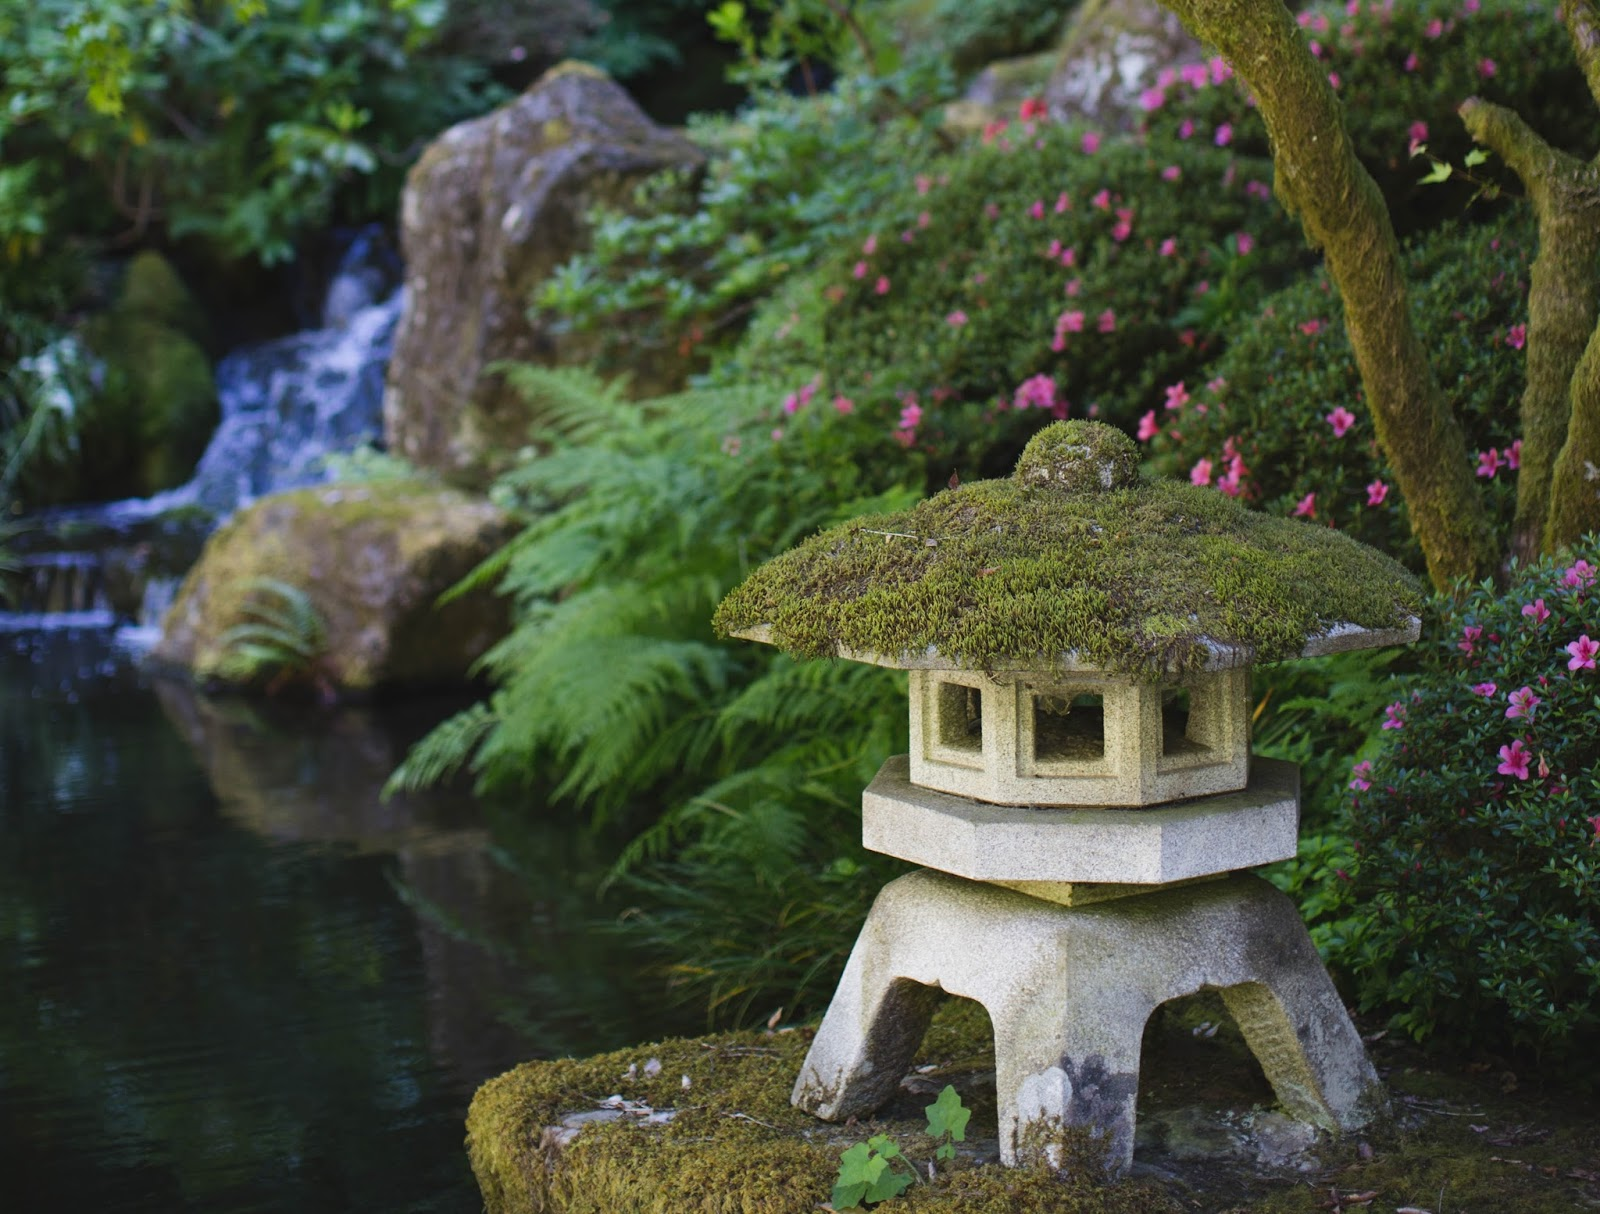 Lattes layers gardens and green spaces in portland - Portland japanese garden admission ...